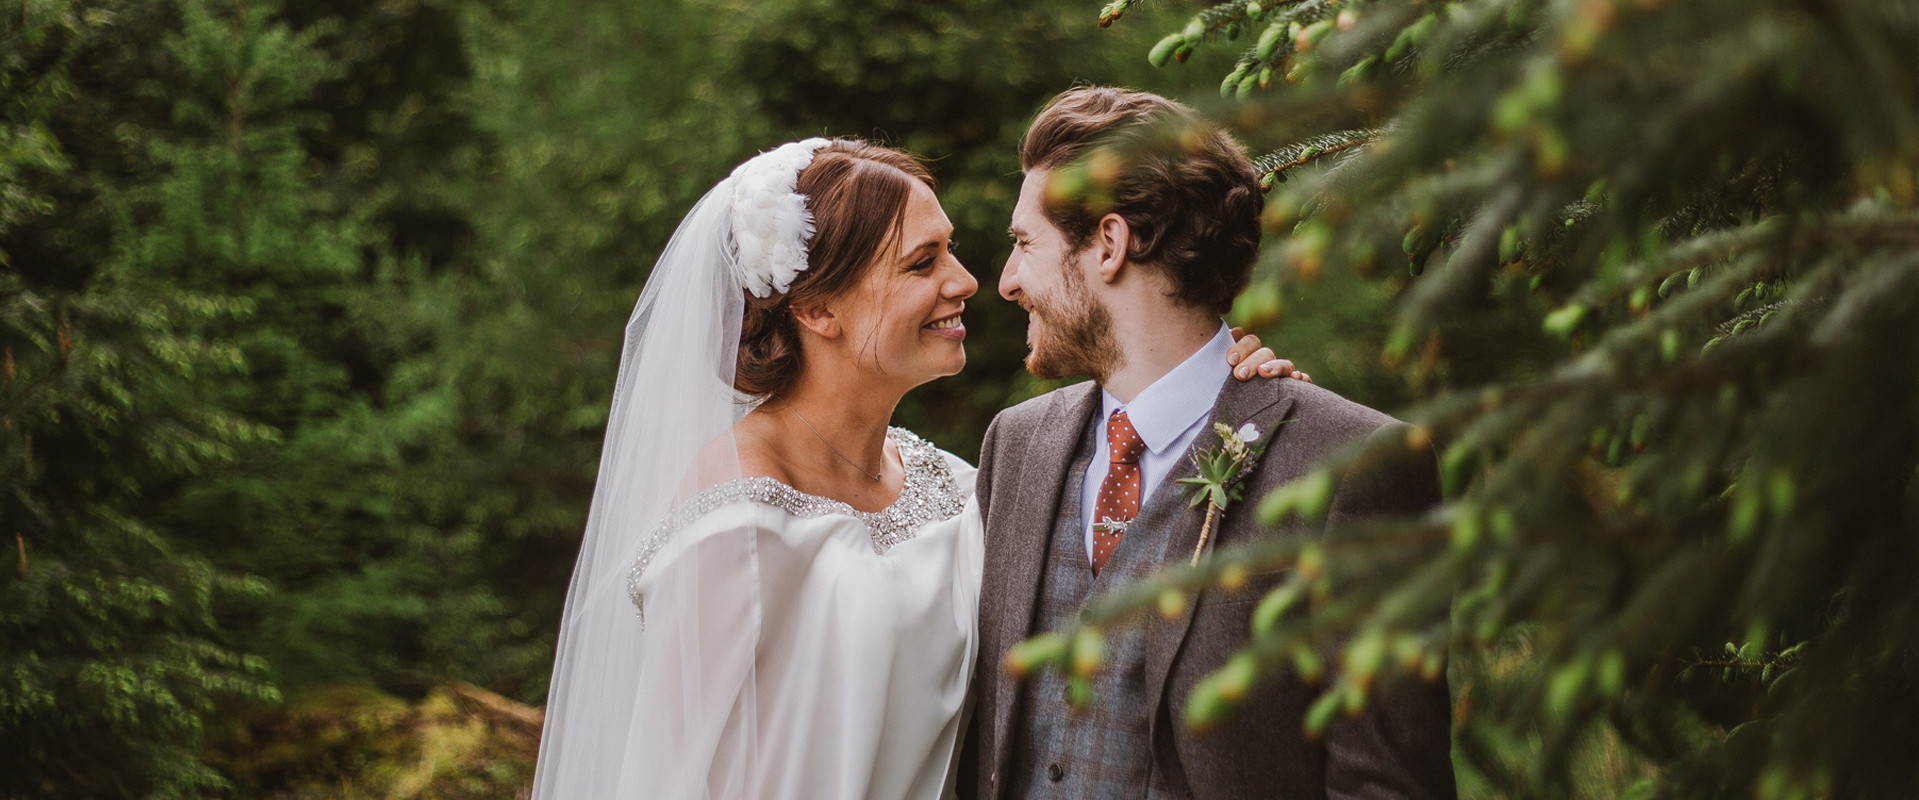 Relaxed Manchester Wedding Photographer - Emilie May